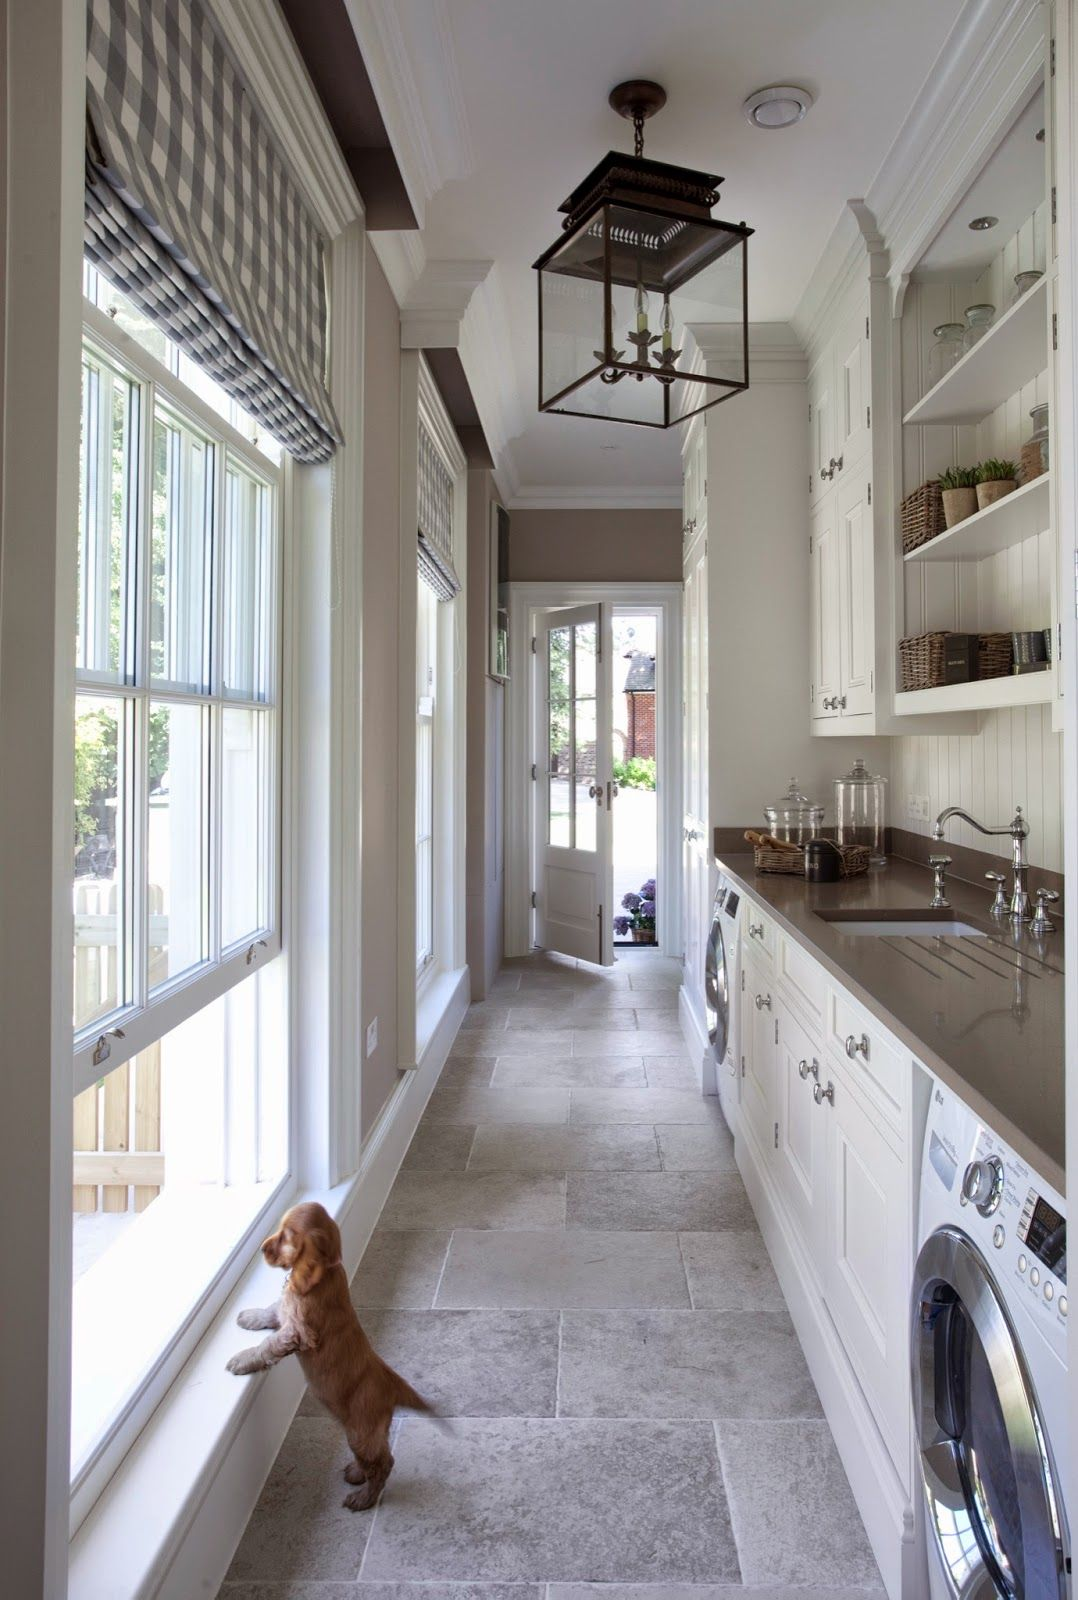 Ciao Newport Beach A Pantry Made In Heaven Mudroom Laundry Room Laundry Mud Room Home